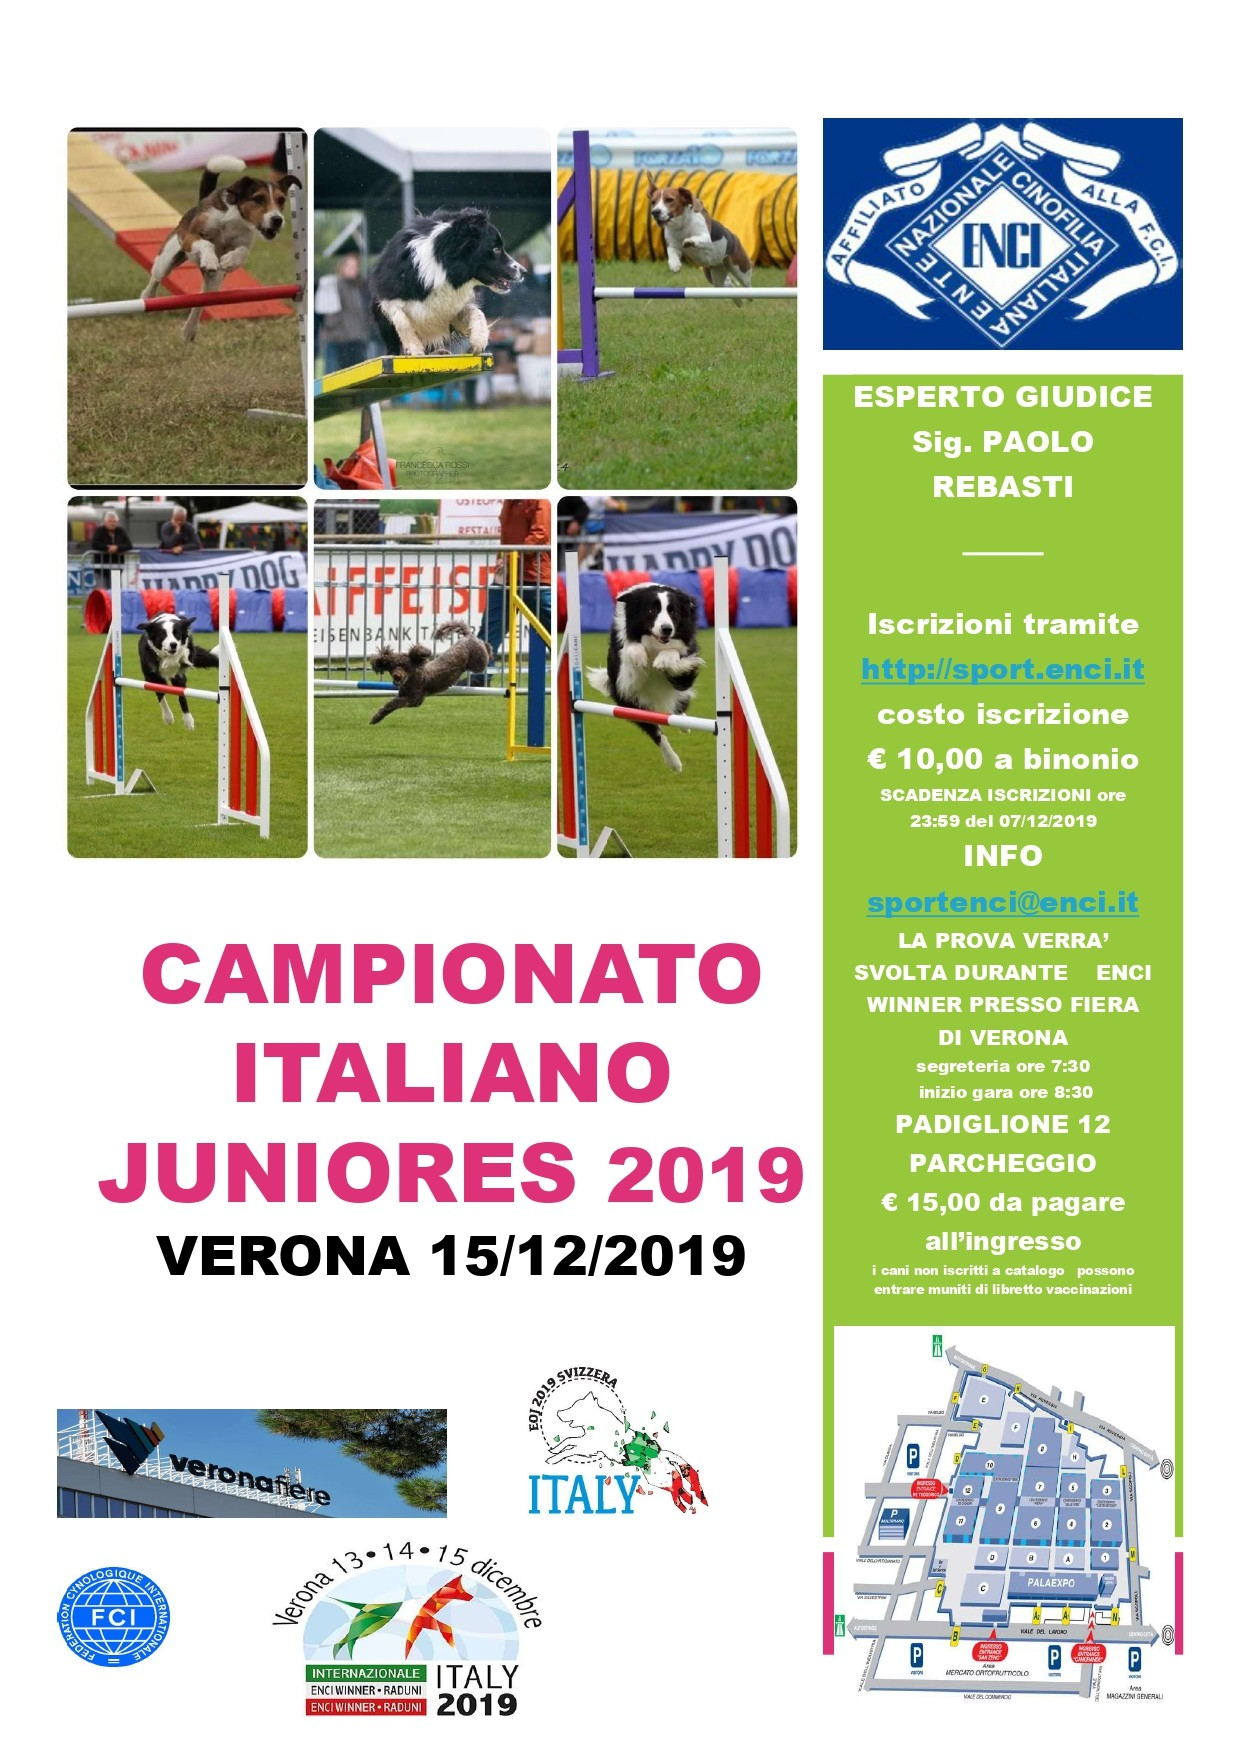 CAMPIONATO ITALIANO JUNIORES 2019 UNDER 19